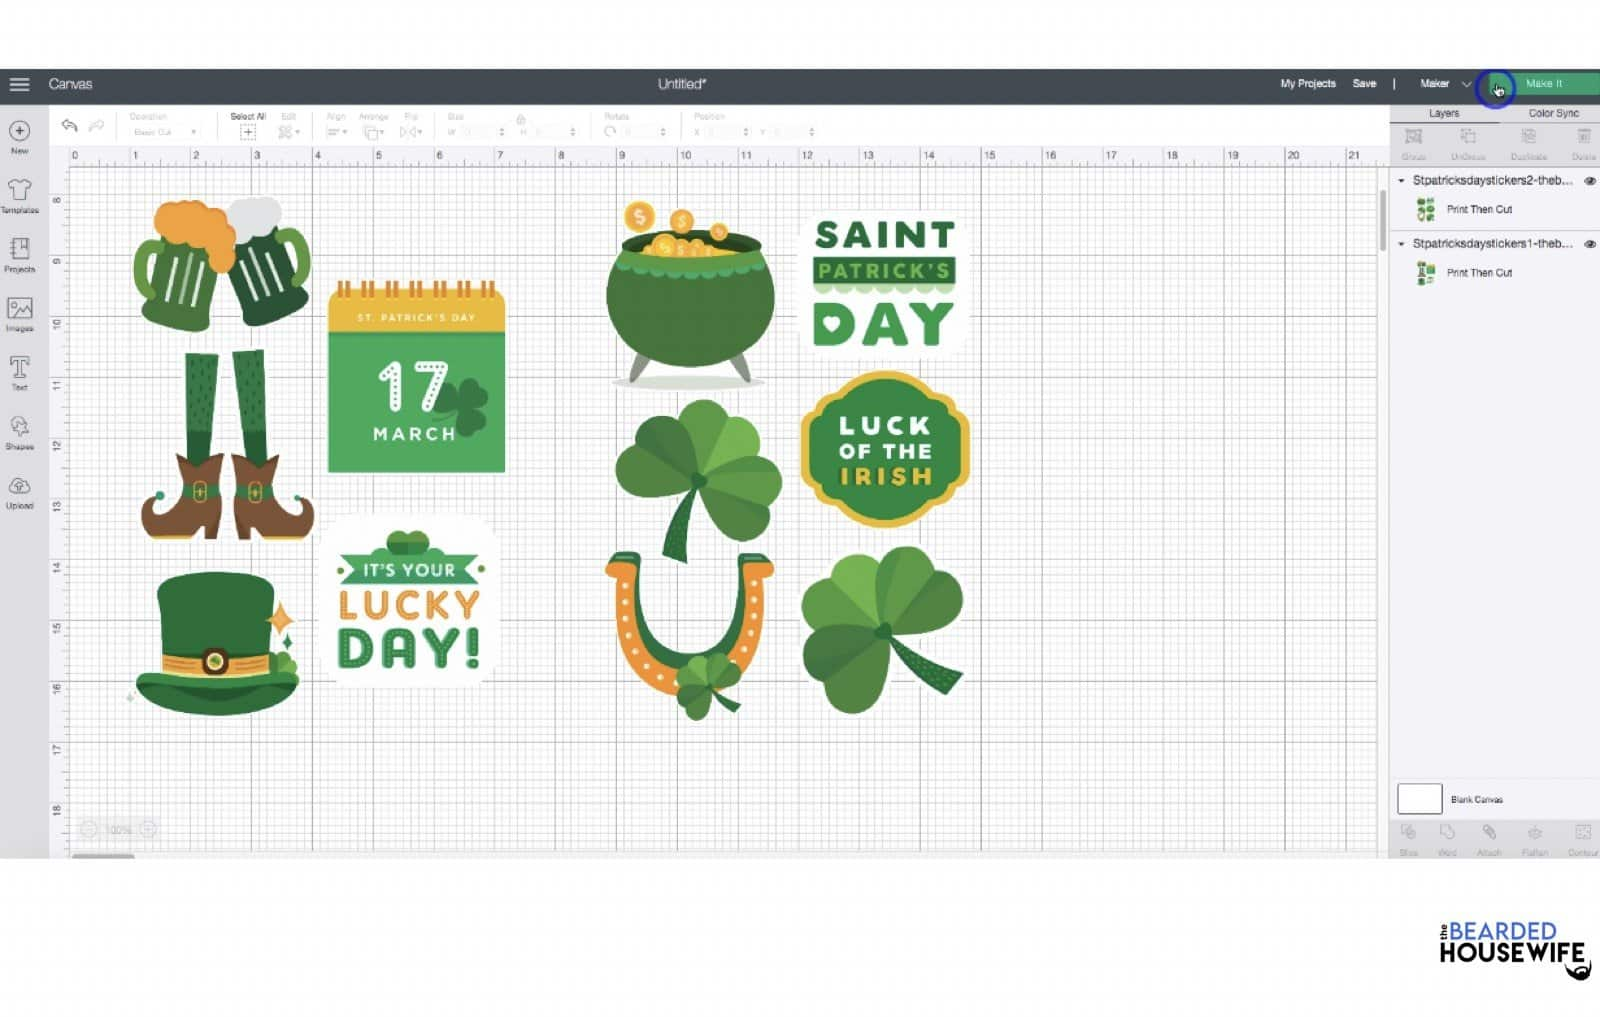 repeat the process for the second sticker sheet